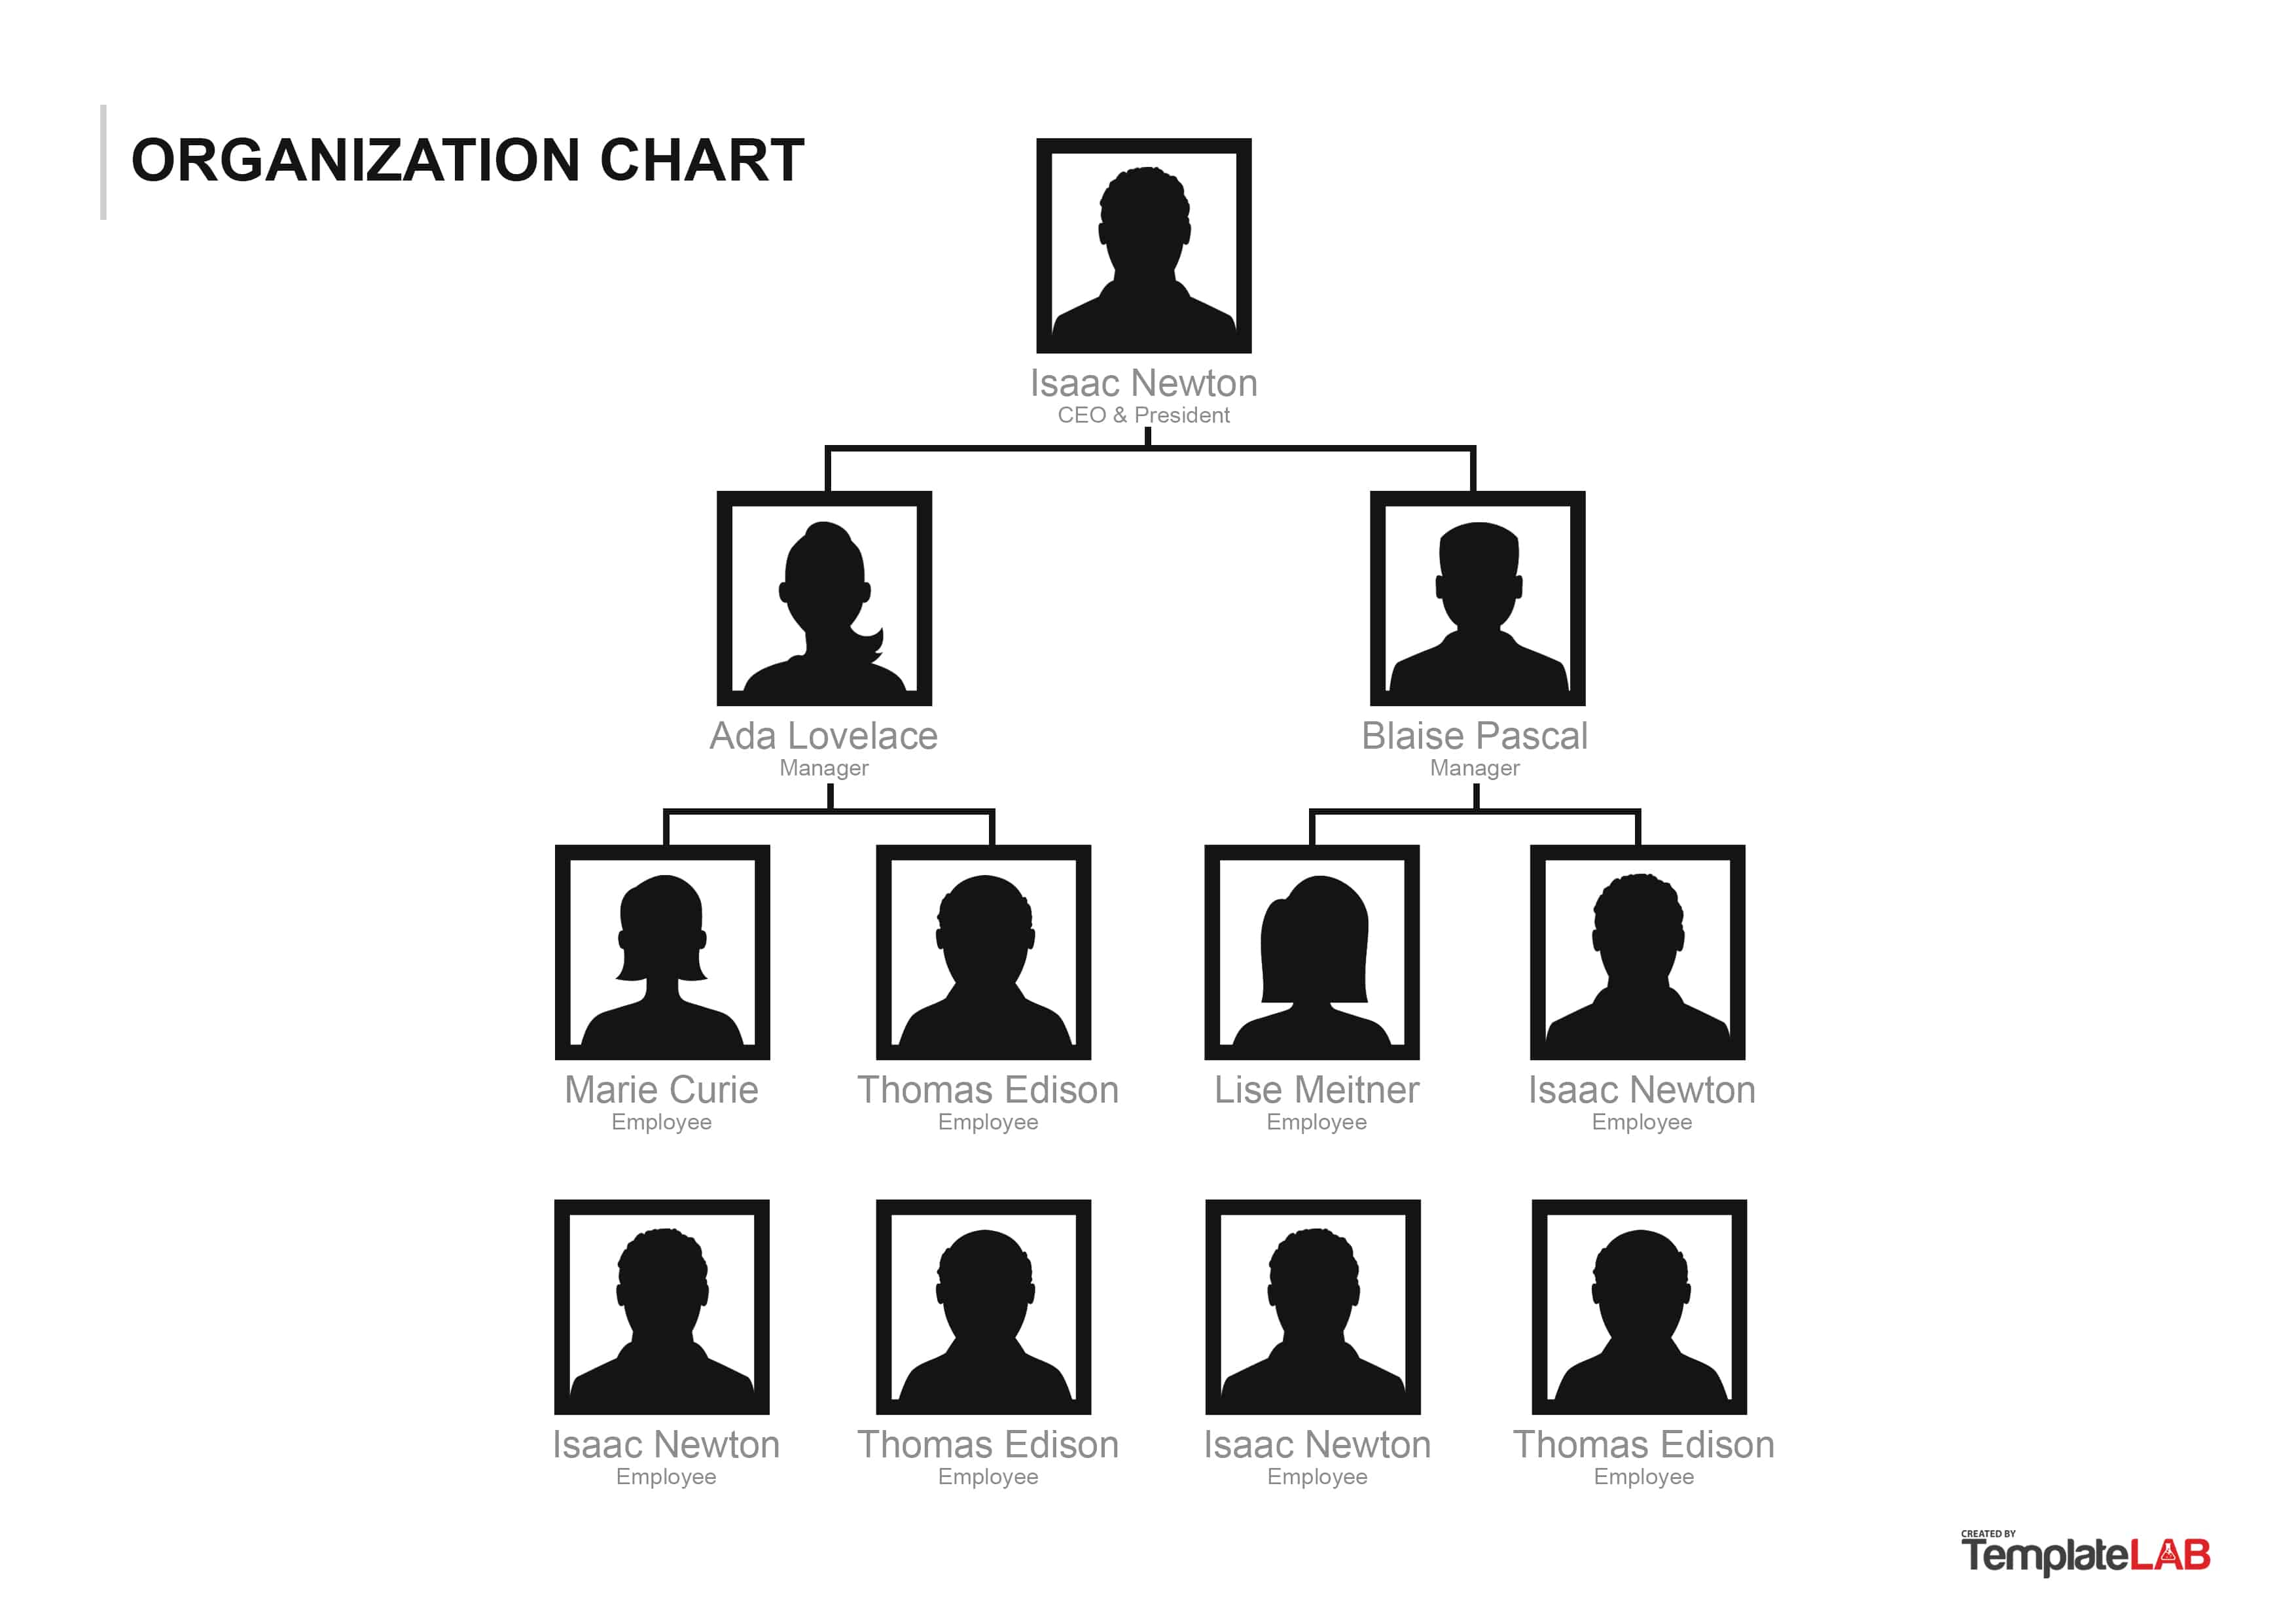 40 Organizational Chart Templates (Word, Excel, Powerpoint) In Organization Chart Template Word